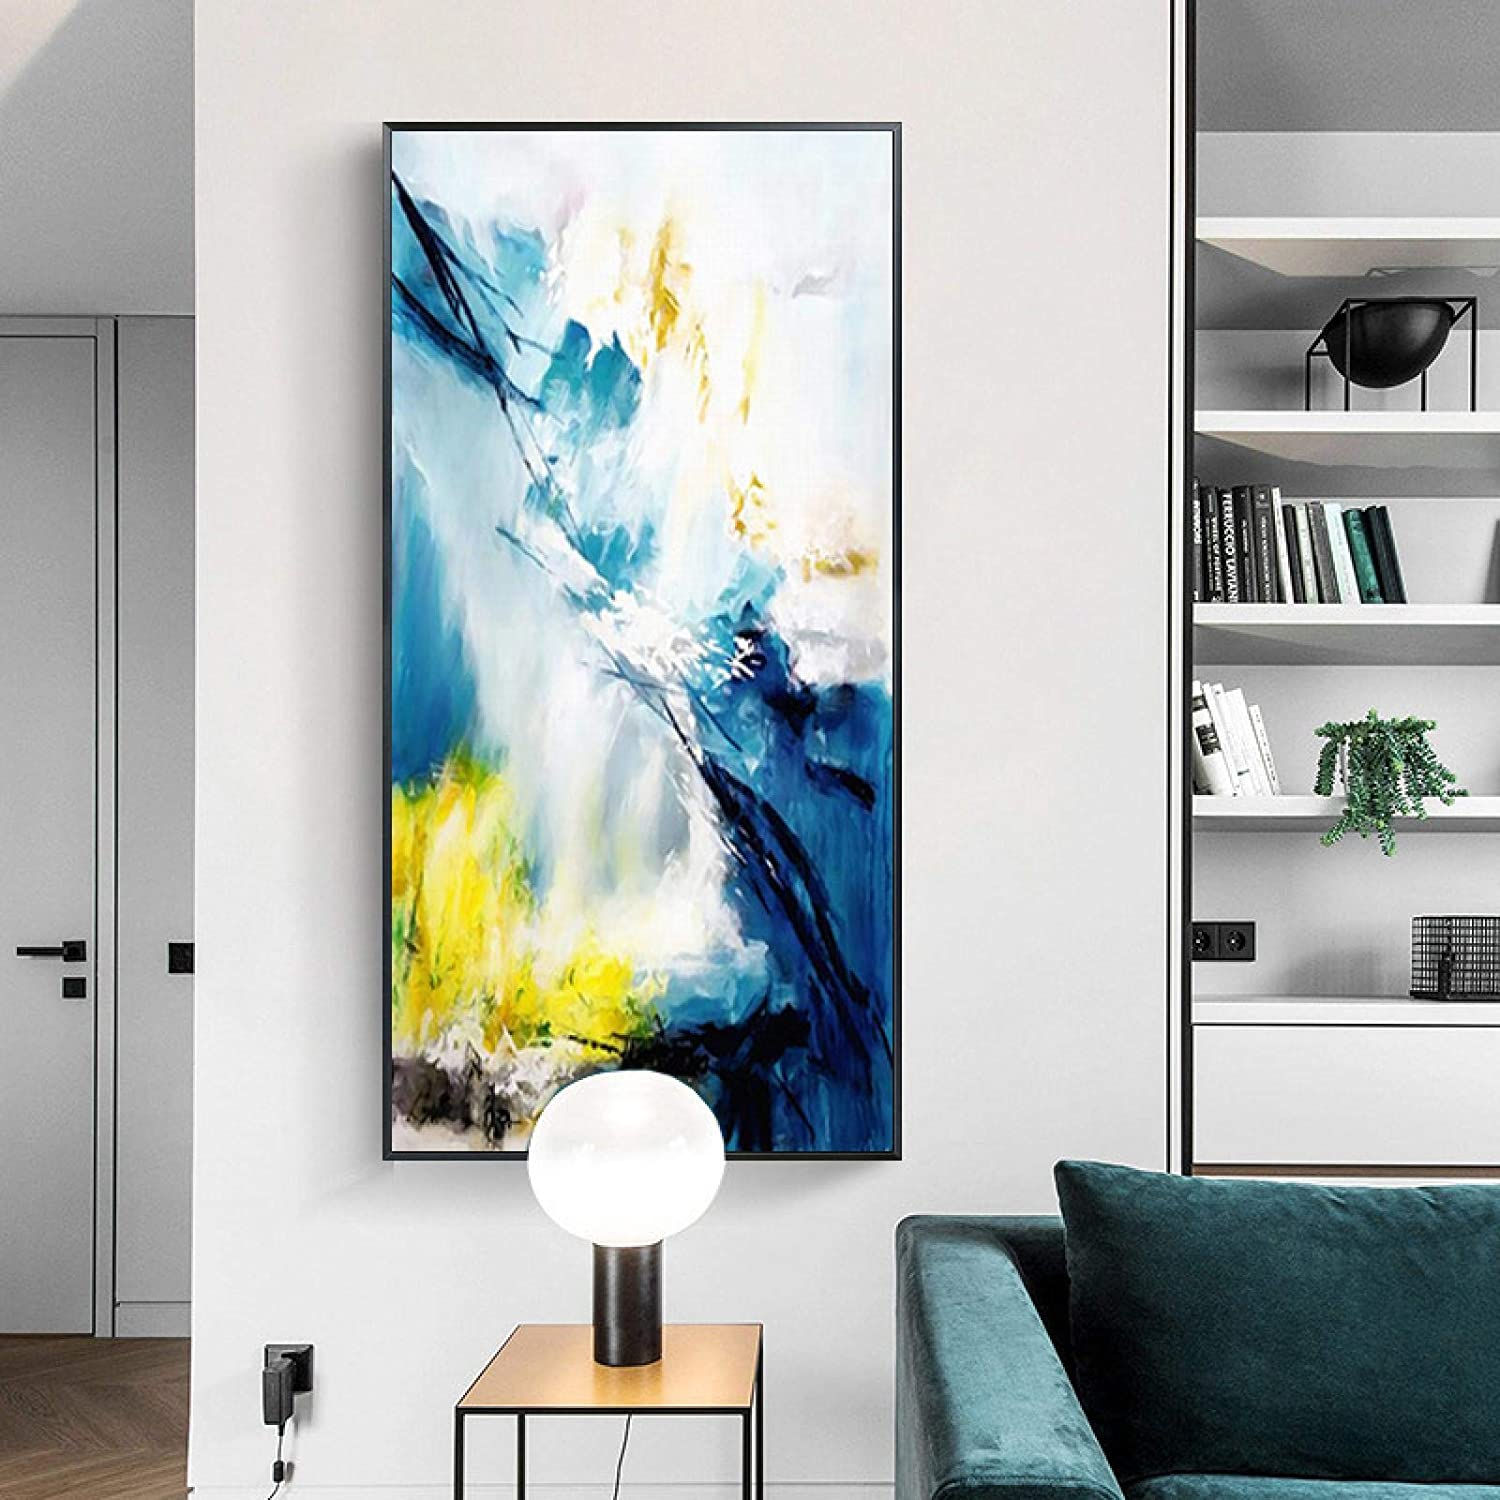 Deluxe Abstract Posters and Max 76% OFF Prints Modern Mo on Printed Painting Canvas